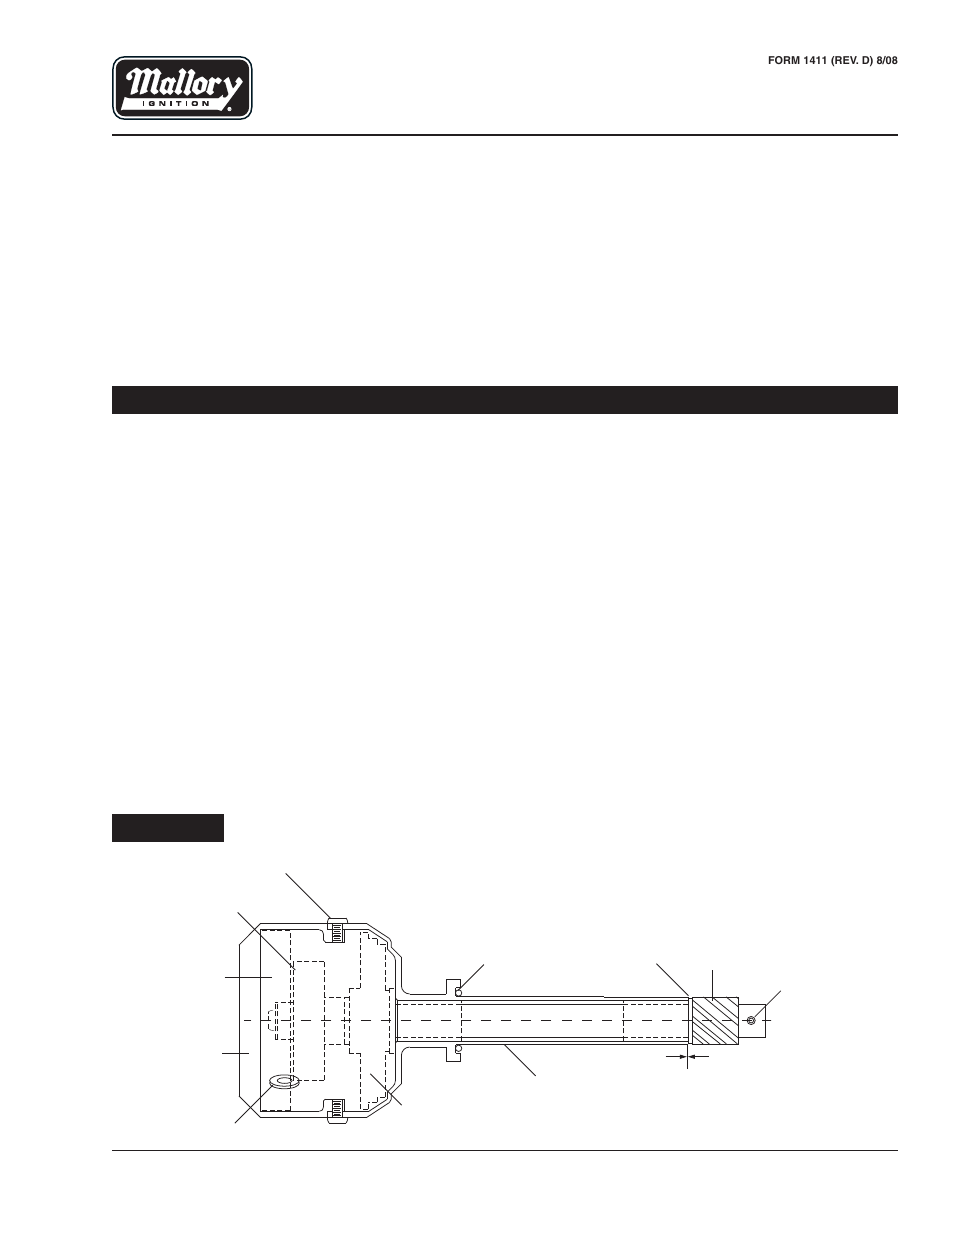 Magnificent Points Distributor Wiring Diagram Component - Electrical ...